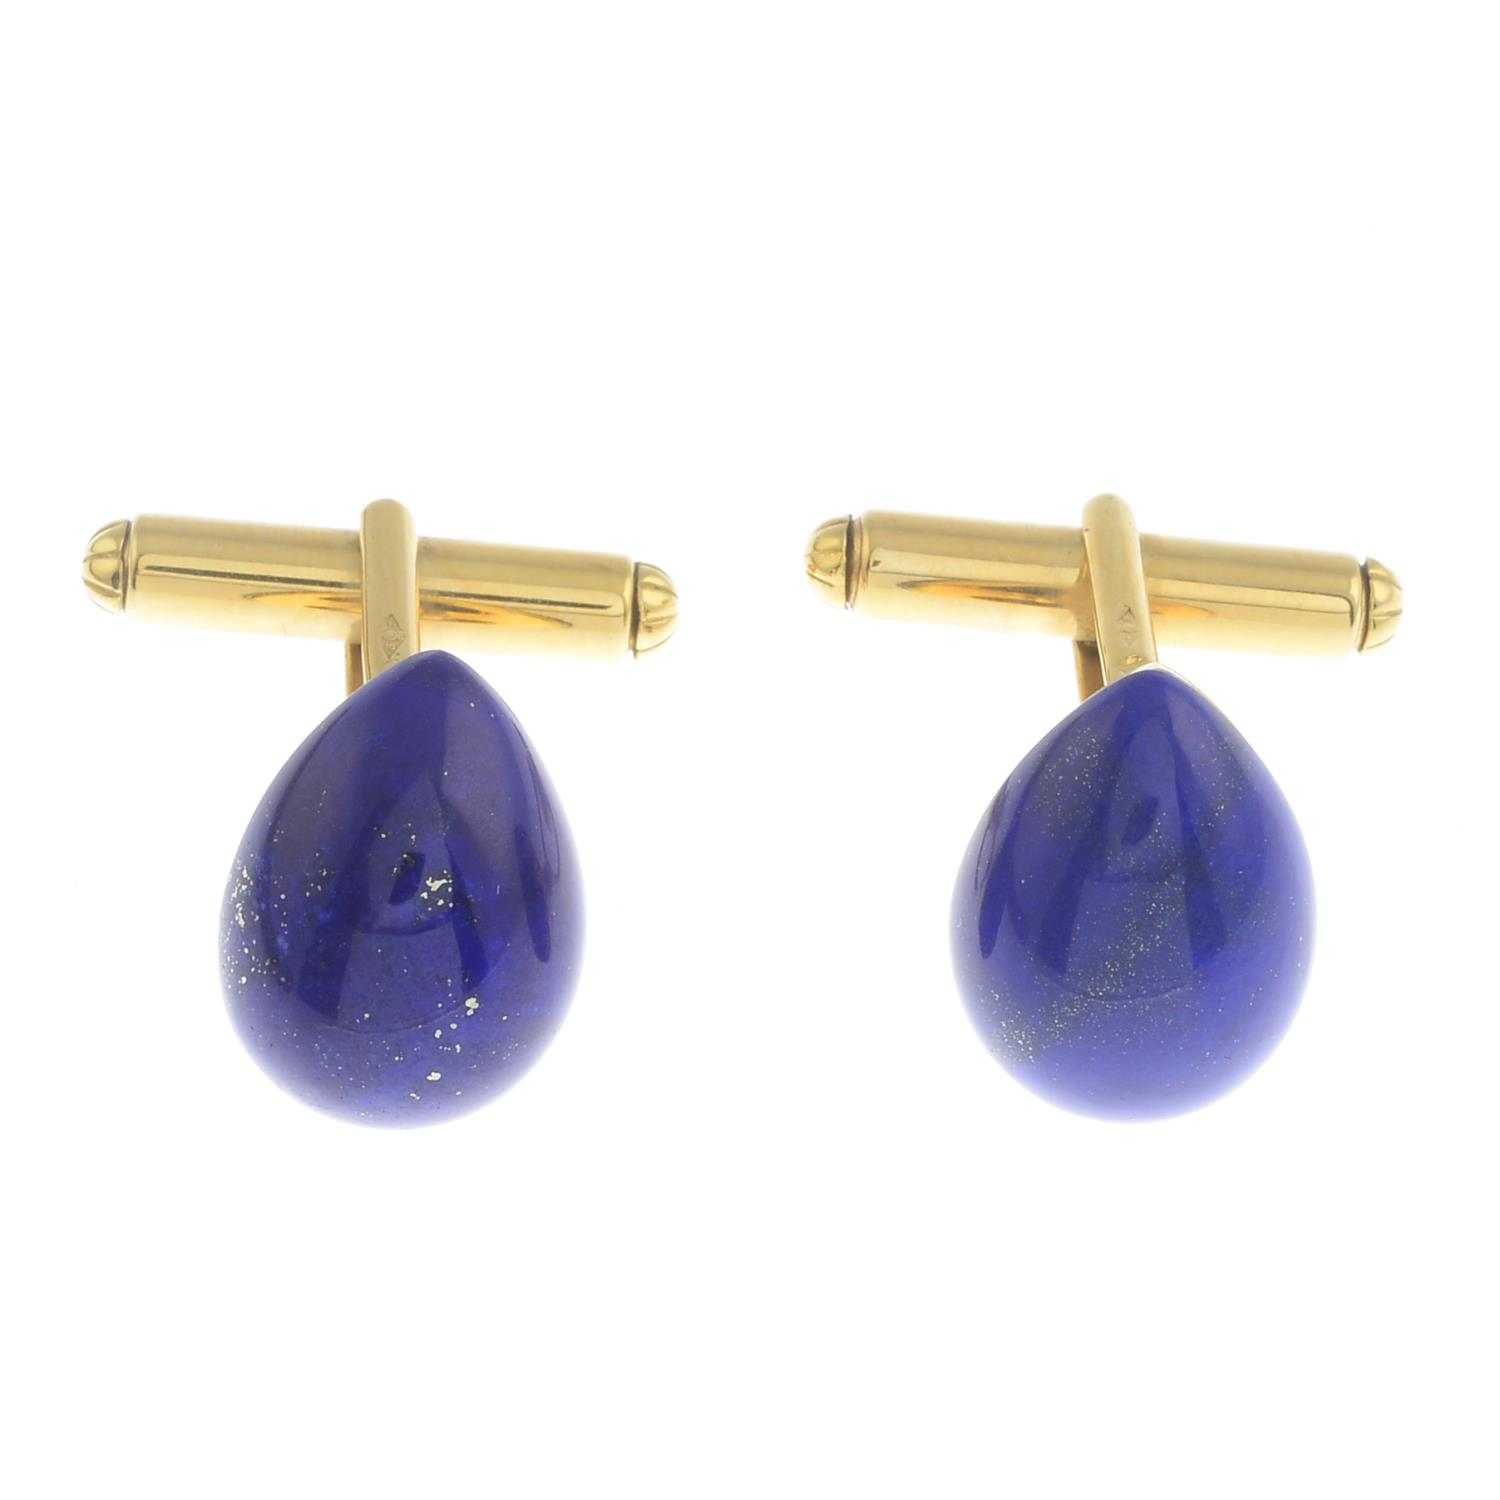 Lot 47 - A pair of 18ct gold lapis lazuli cufflinks.Hallmarks for London, 2000.Length 1.6cms.